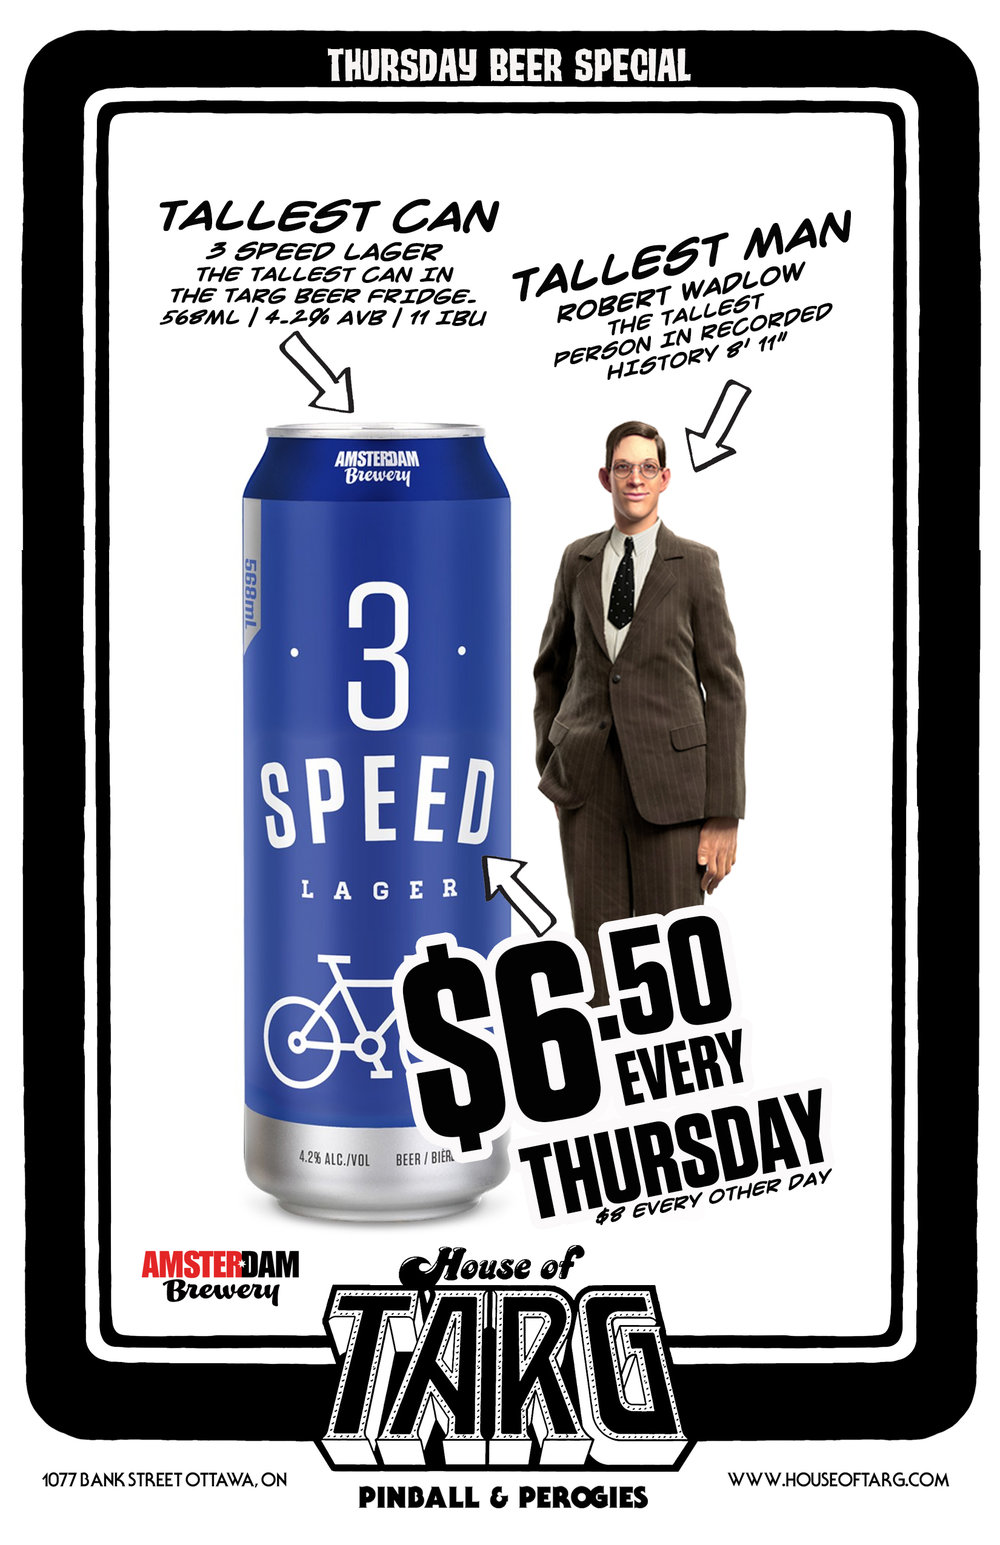 EVERY THURSDAY  JUST $6.50 FOR THE TALLEST CAN IN OUR FRIDGE…. AMSTERDAM 3 SPEED LAGER - 568ml